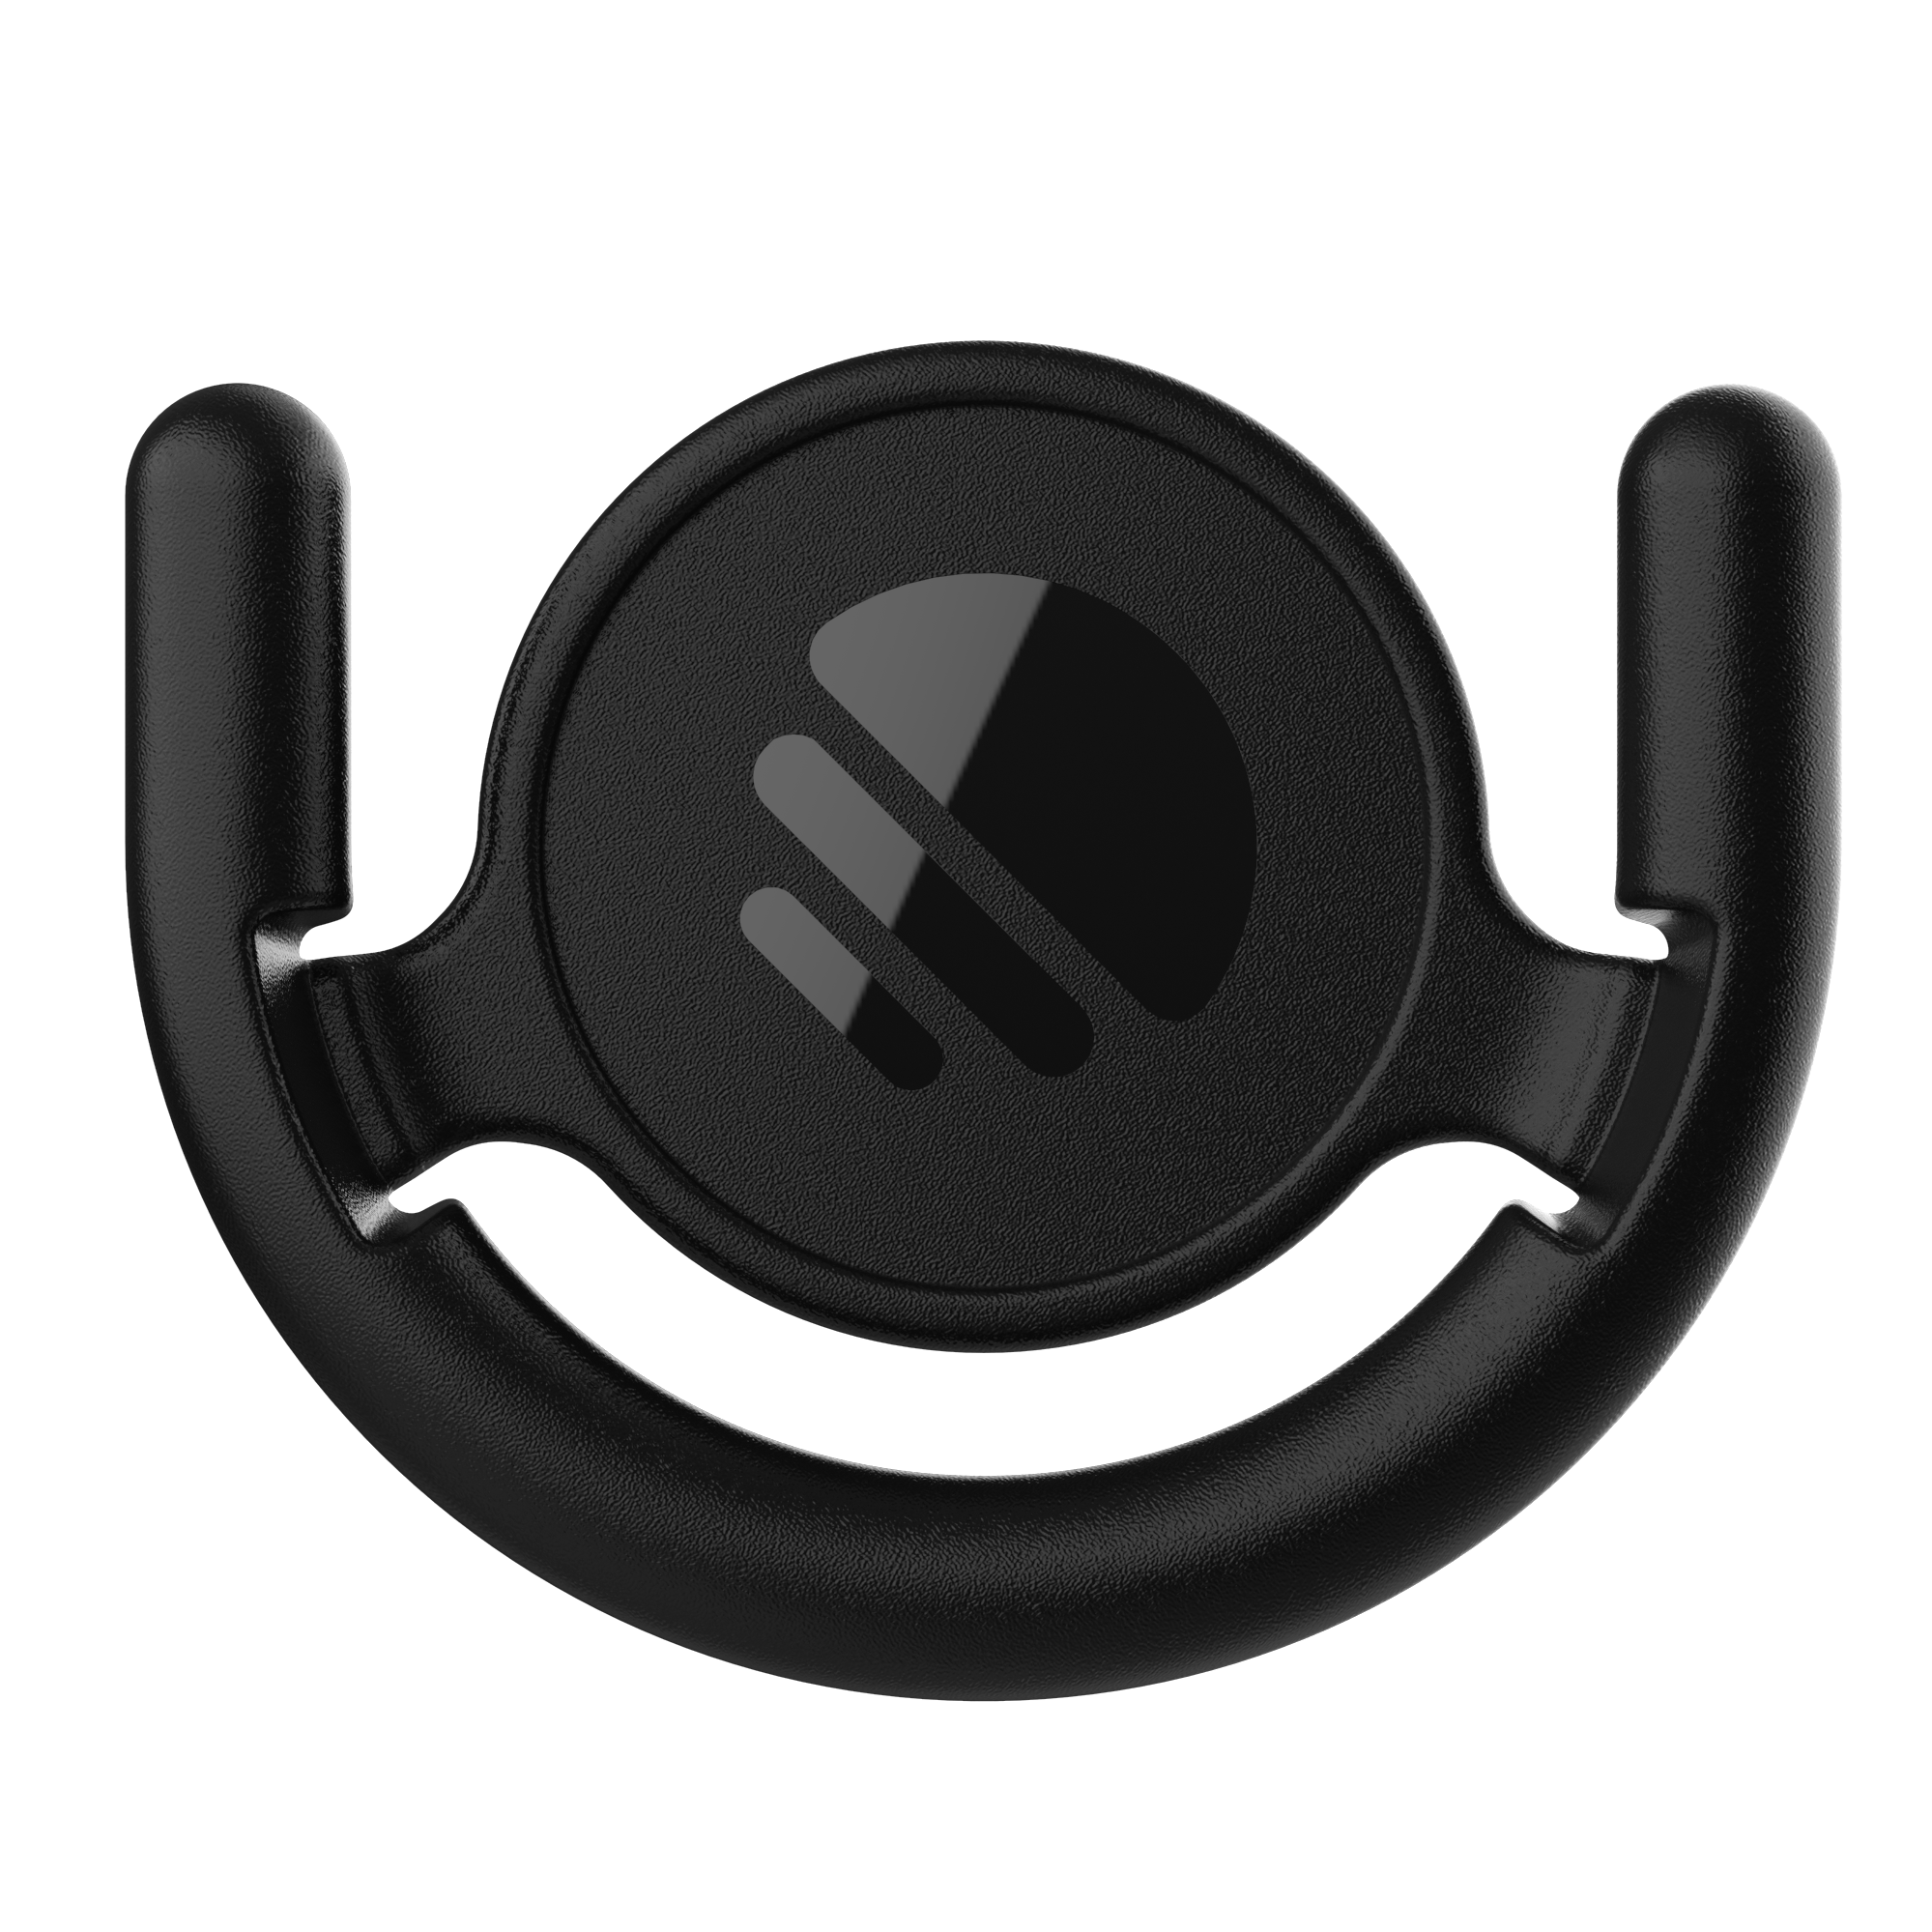 Black Multi-Surface Mount, PopSockets